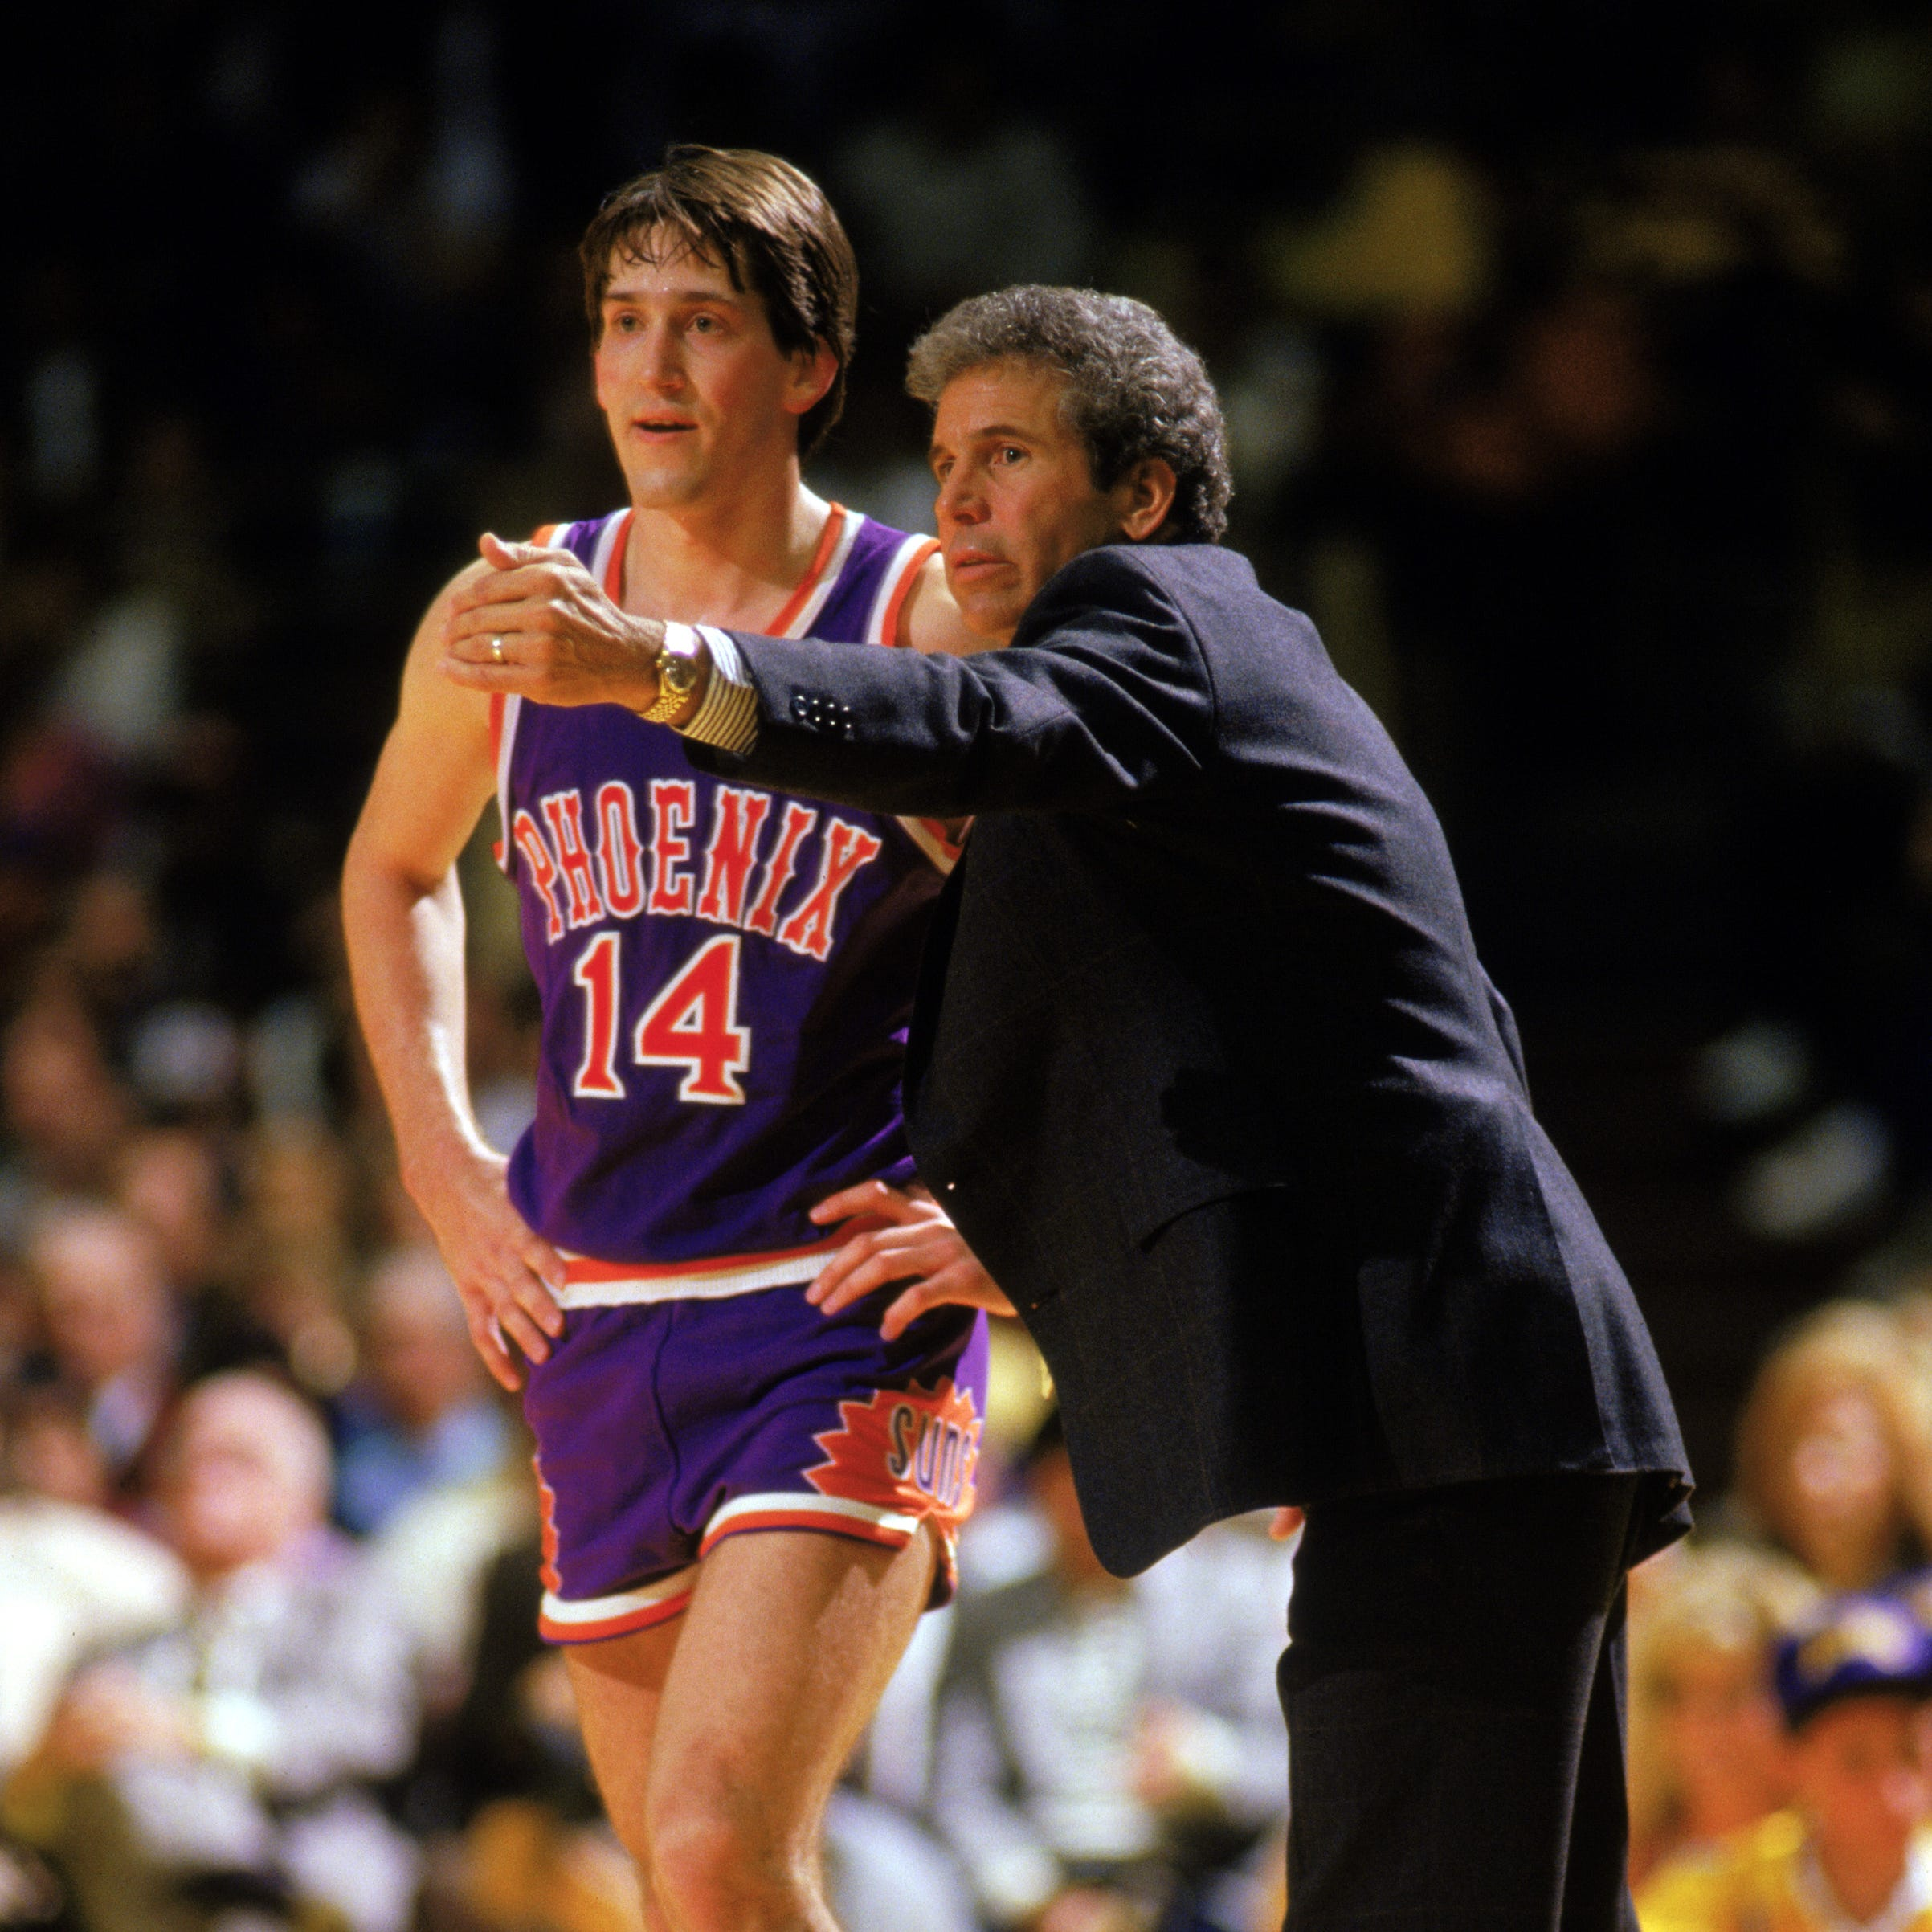 Former Phoenix Suns coach John MacLeod dies at 81